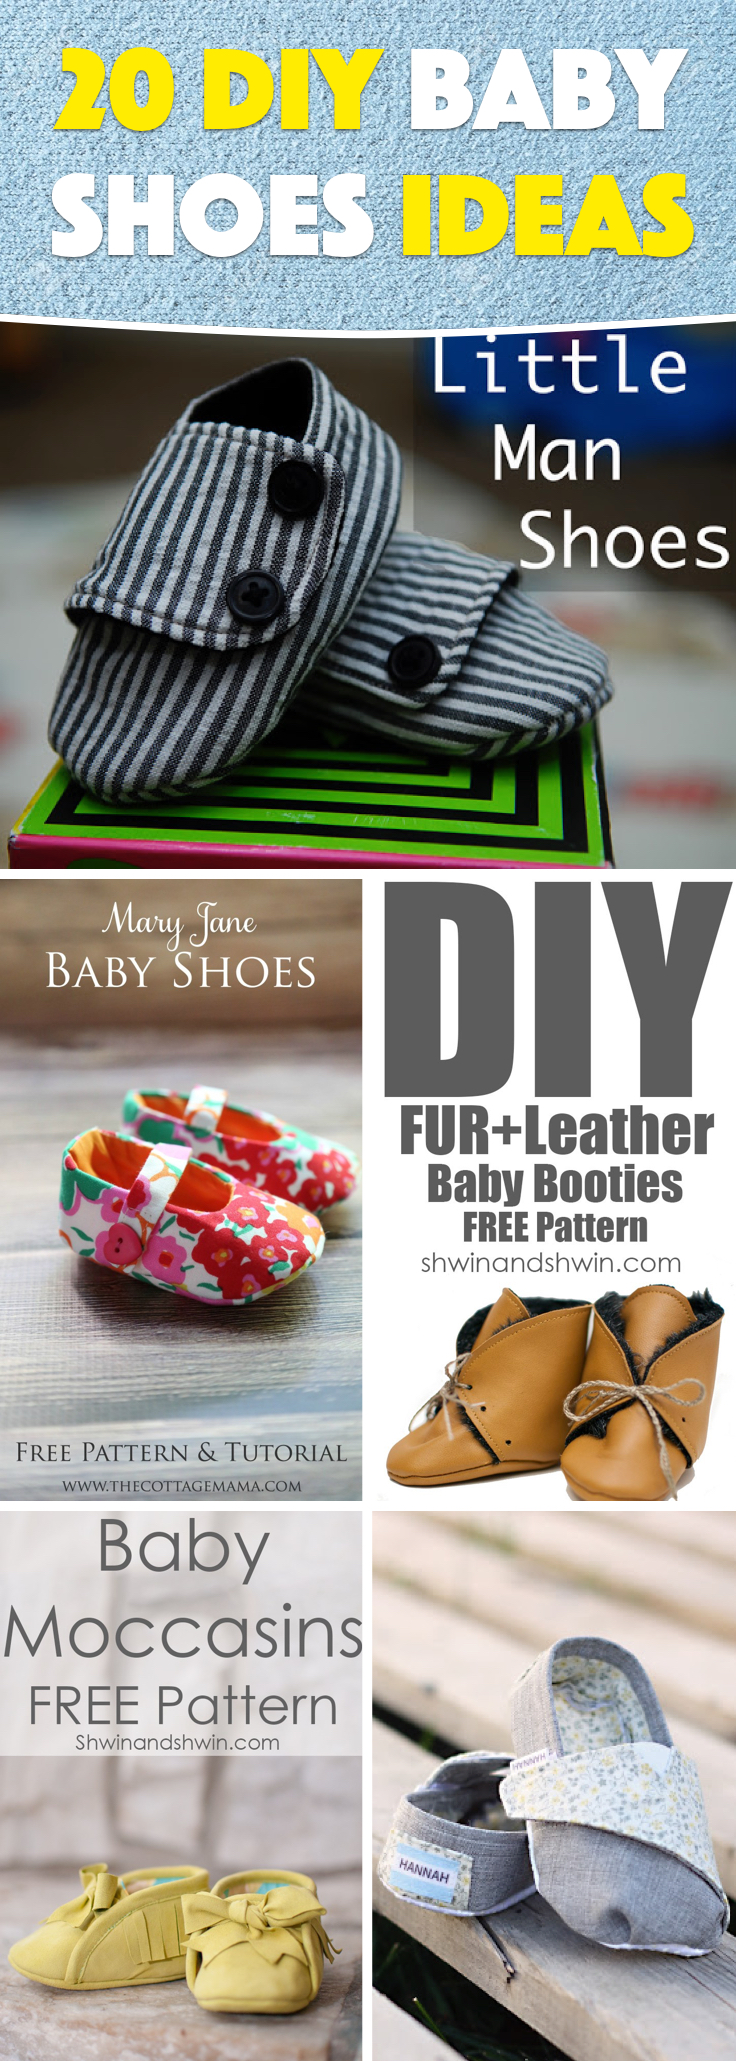 7e294e8185fbb 20 DIY Baby Shoes Ideas With Free Patterns and Instructions